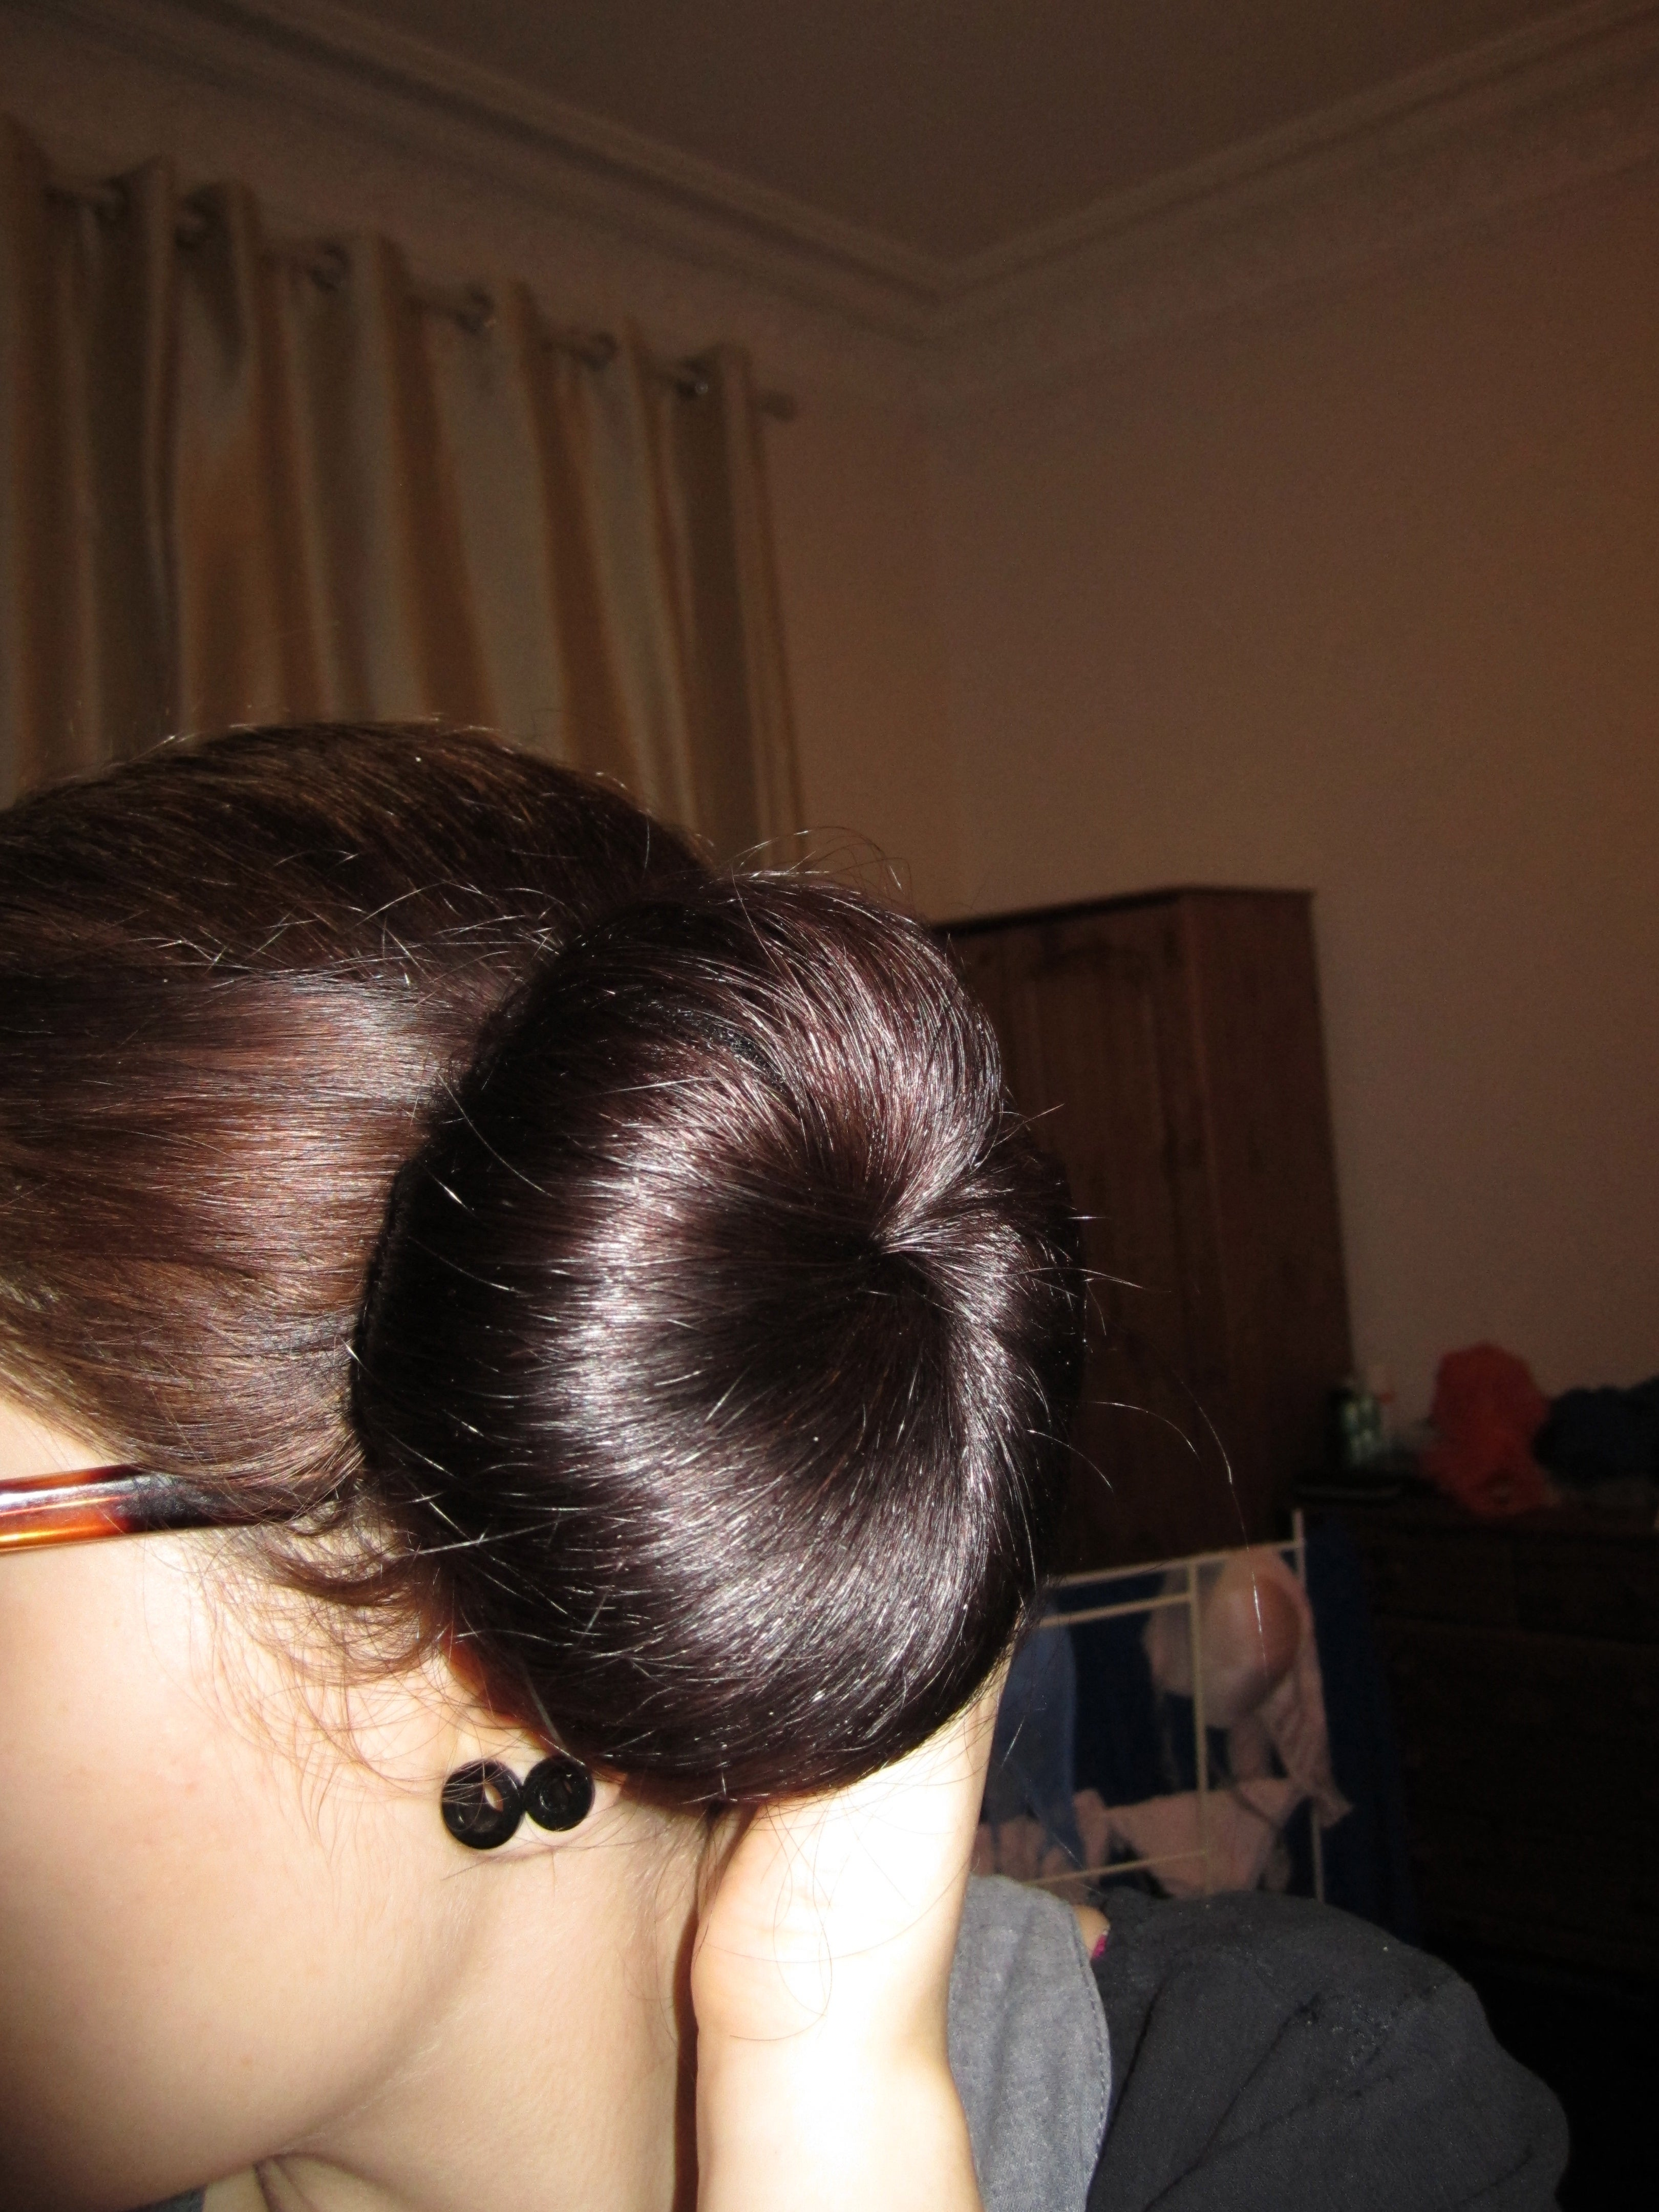 How To Get Princess Leia S Hair Two Versions Instructables